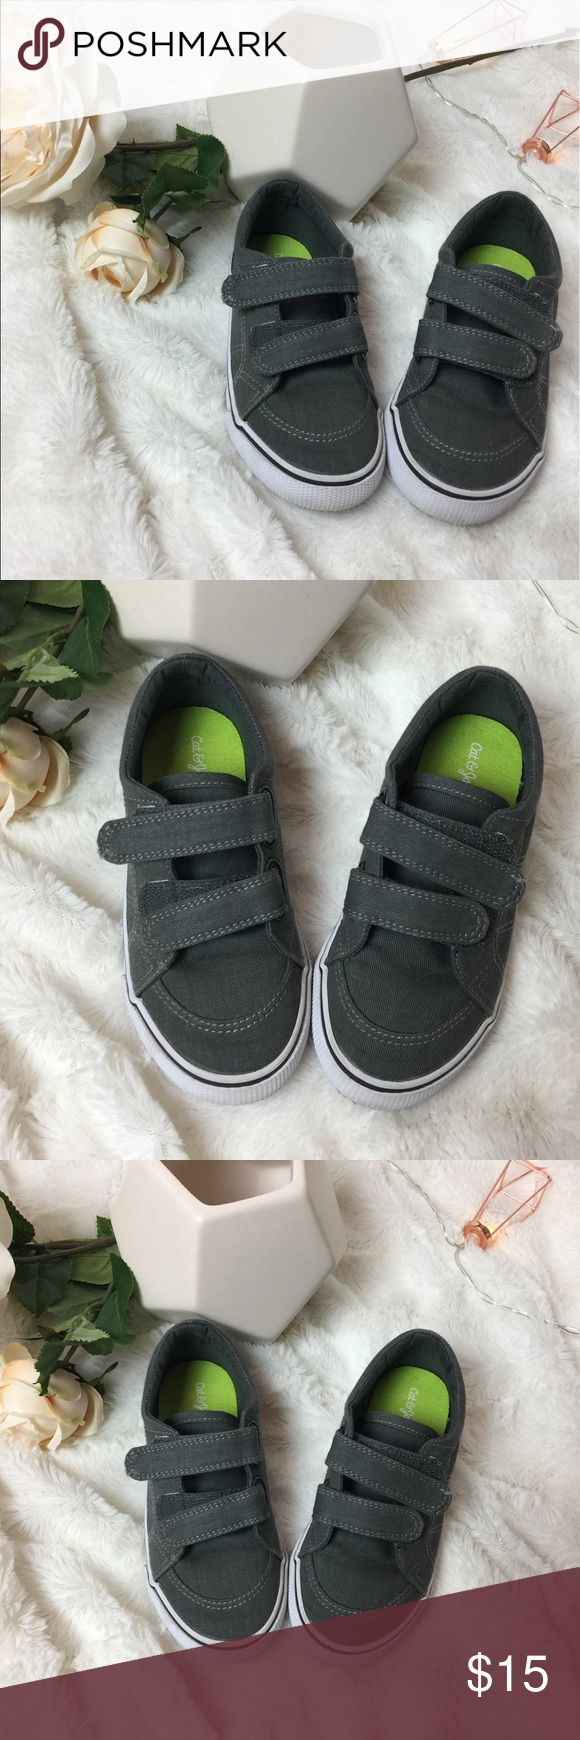 🆕Boys Cat and Jack Velcro Boat Shoes Toddler Boys adorable canvas boat shoe style with double Velcro closures for perfect fit and easy slip on design. Gray exterior with bright green interior. Excellent slightly used condition with slight wear on outer sole as shown in pictures. All items come from a pet and smoke free studio. Cat and Jack Shoes Sneakers